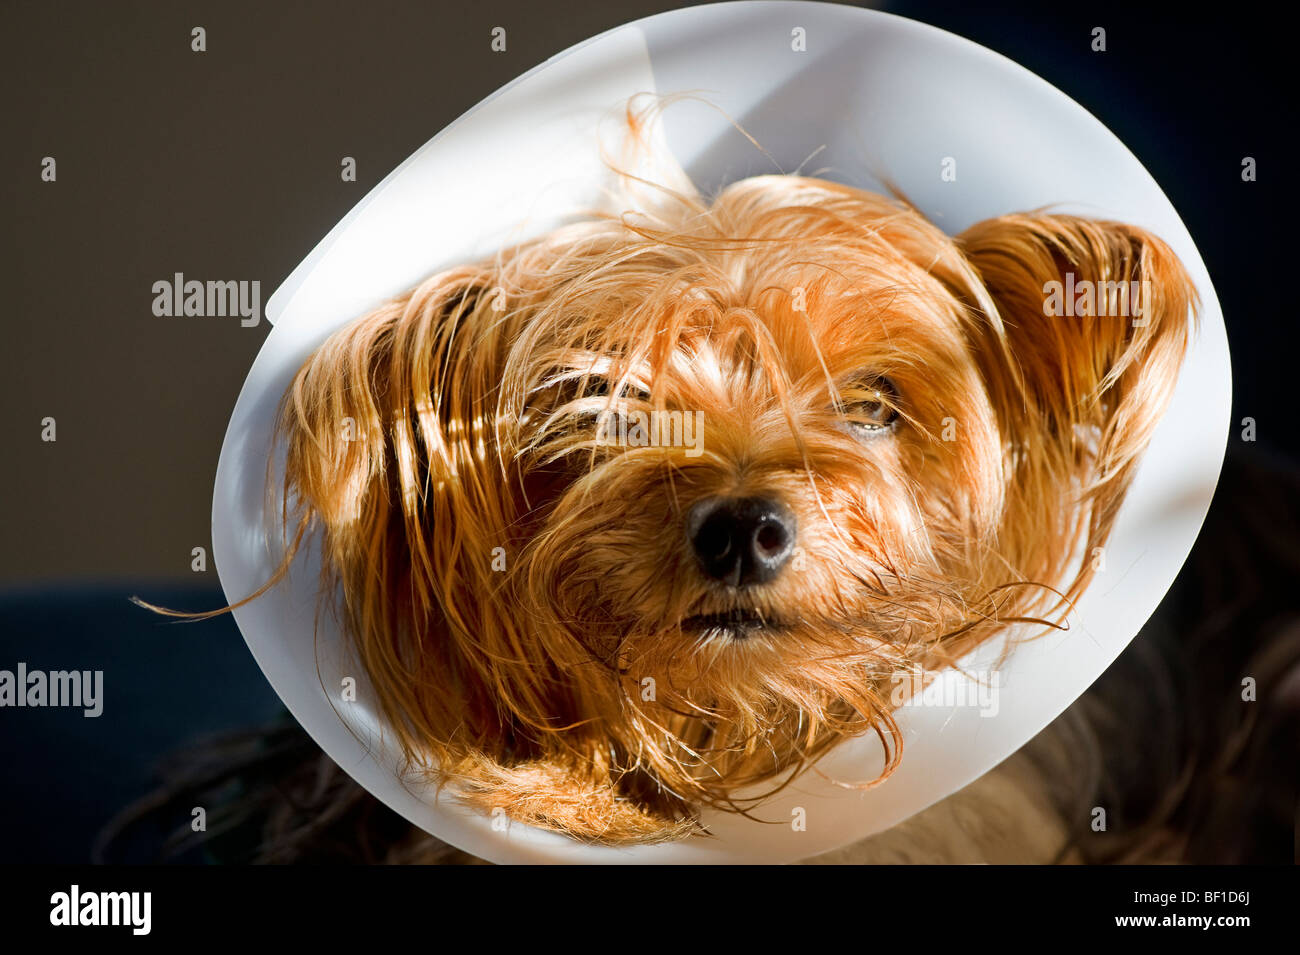 Dog with a Elizabethan collar, Sweden. - Stock Image